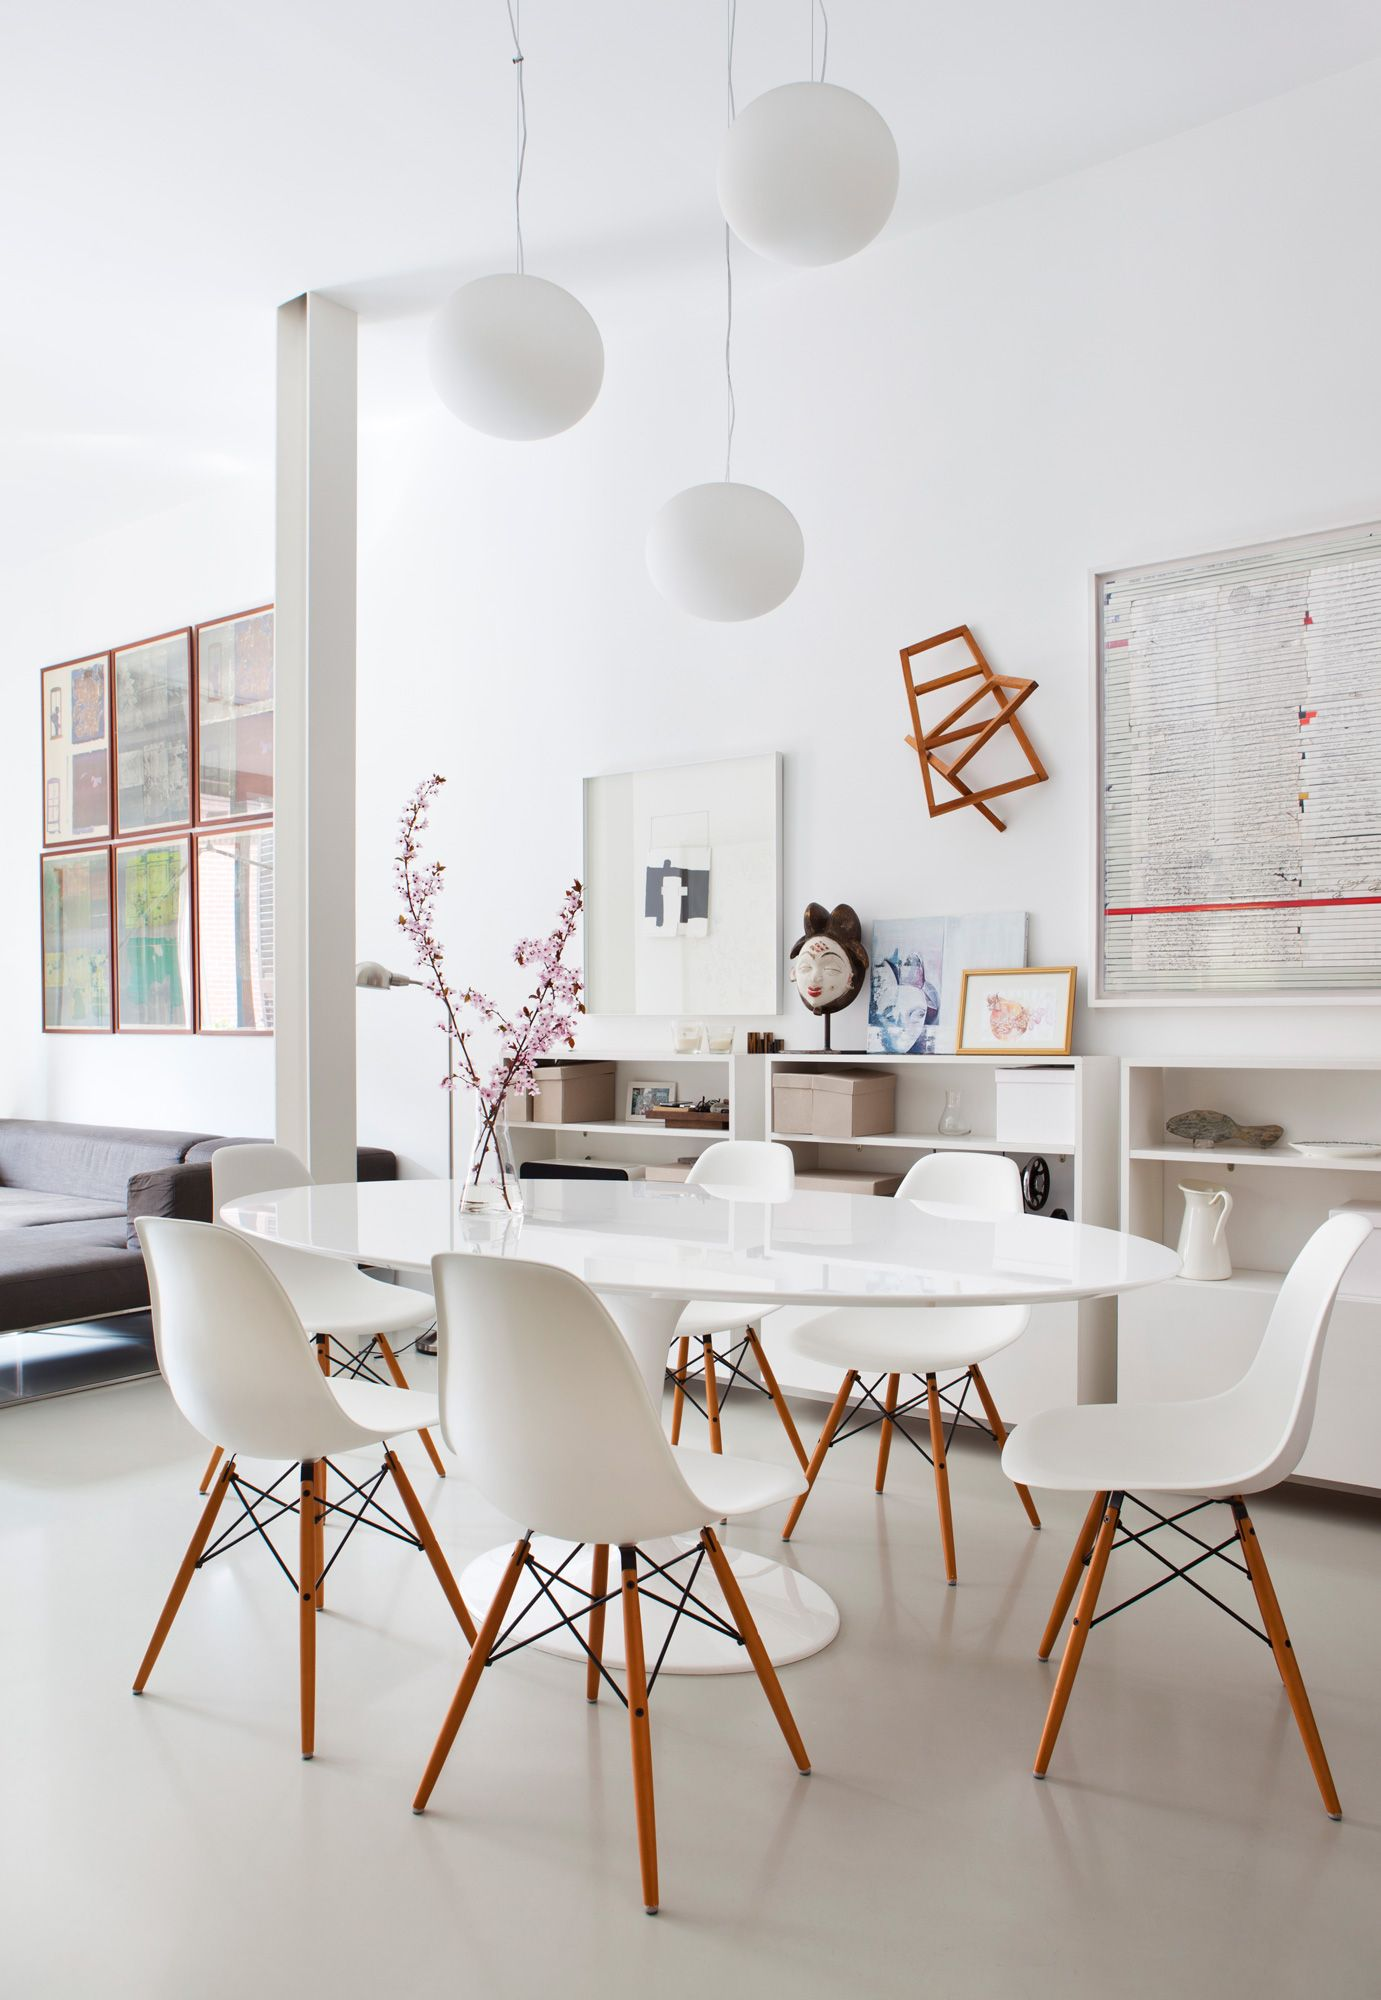 Clean modern dining room with Eero Saarinen table and Charles and